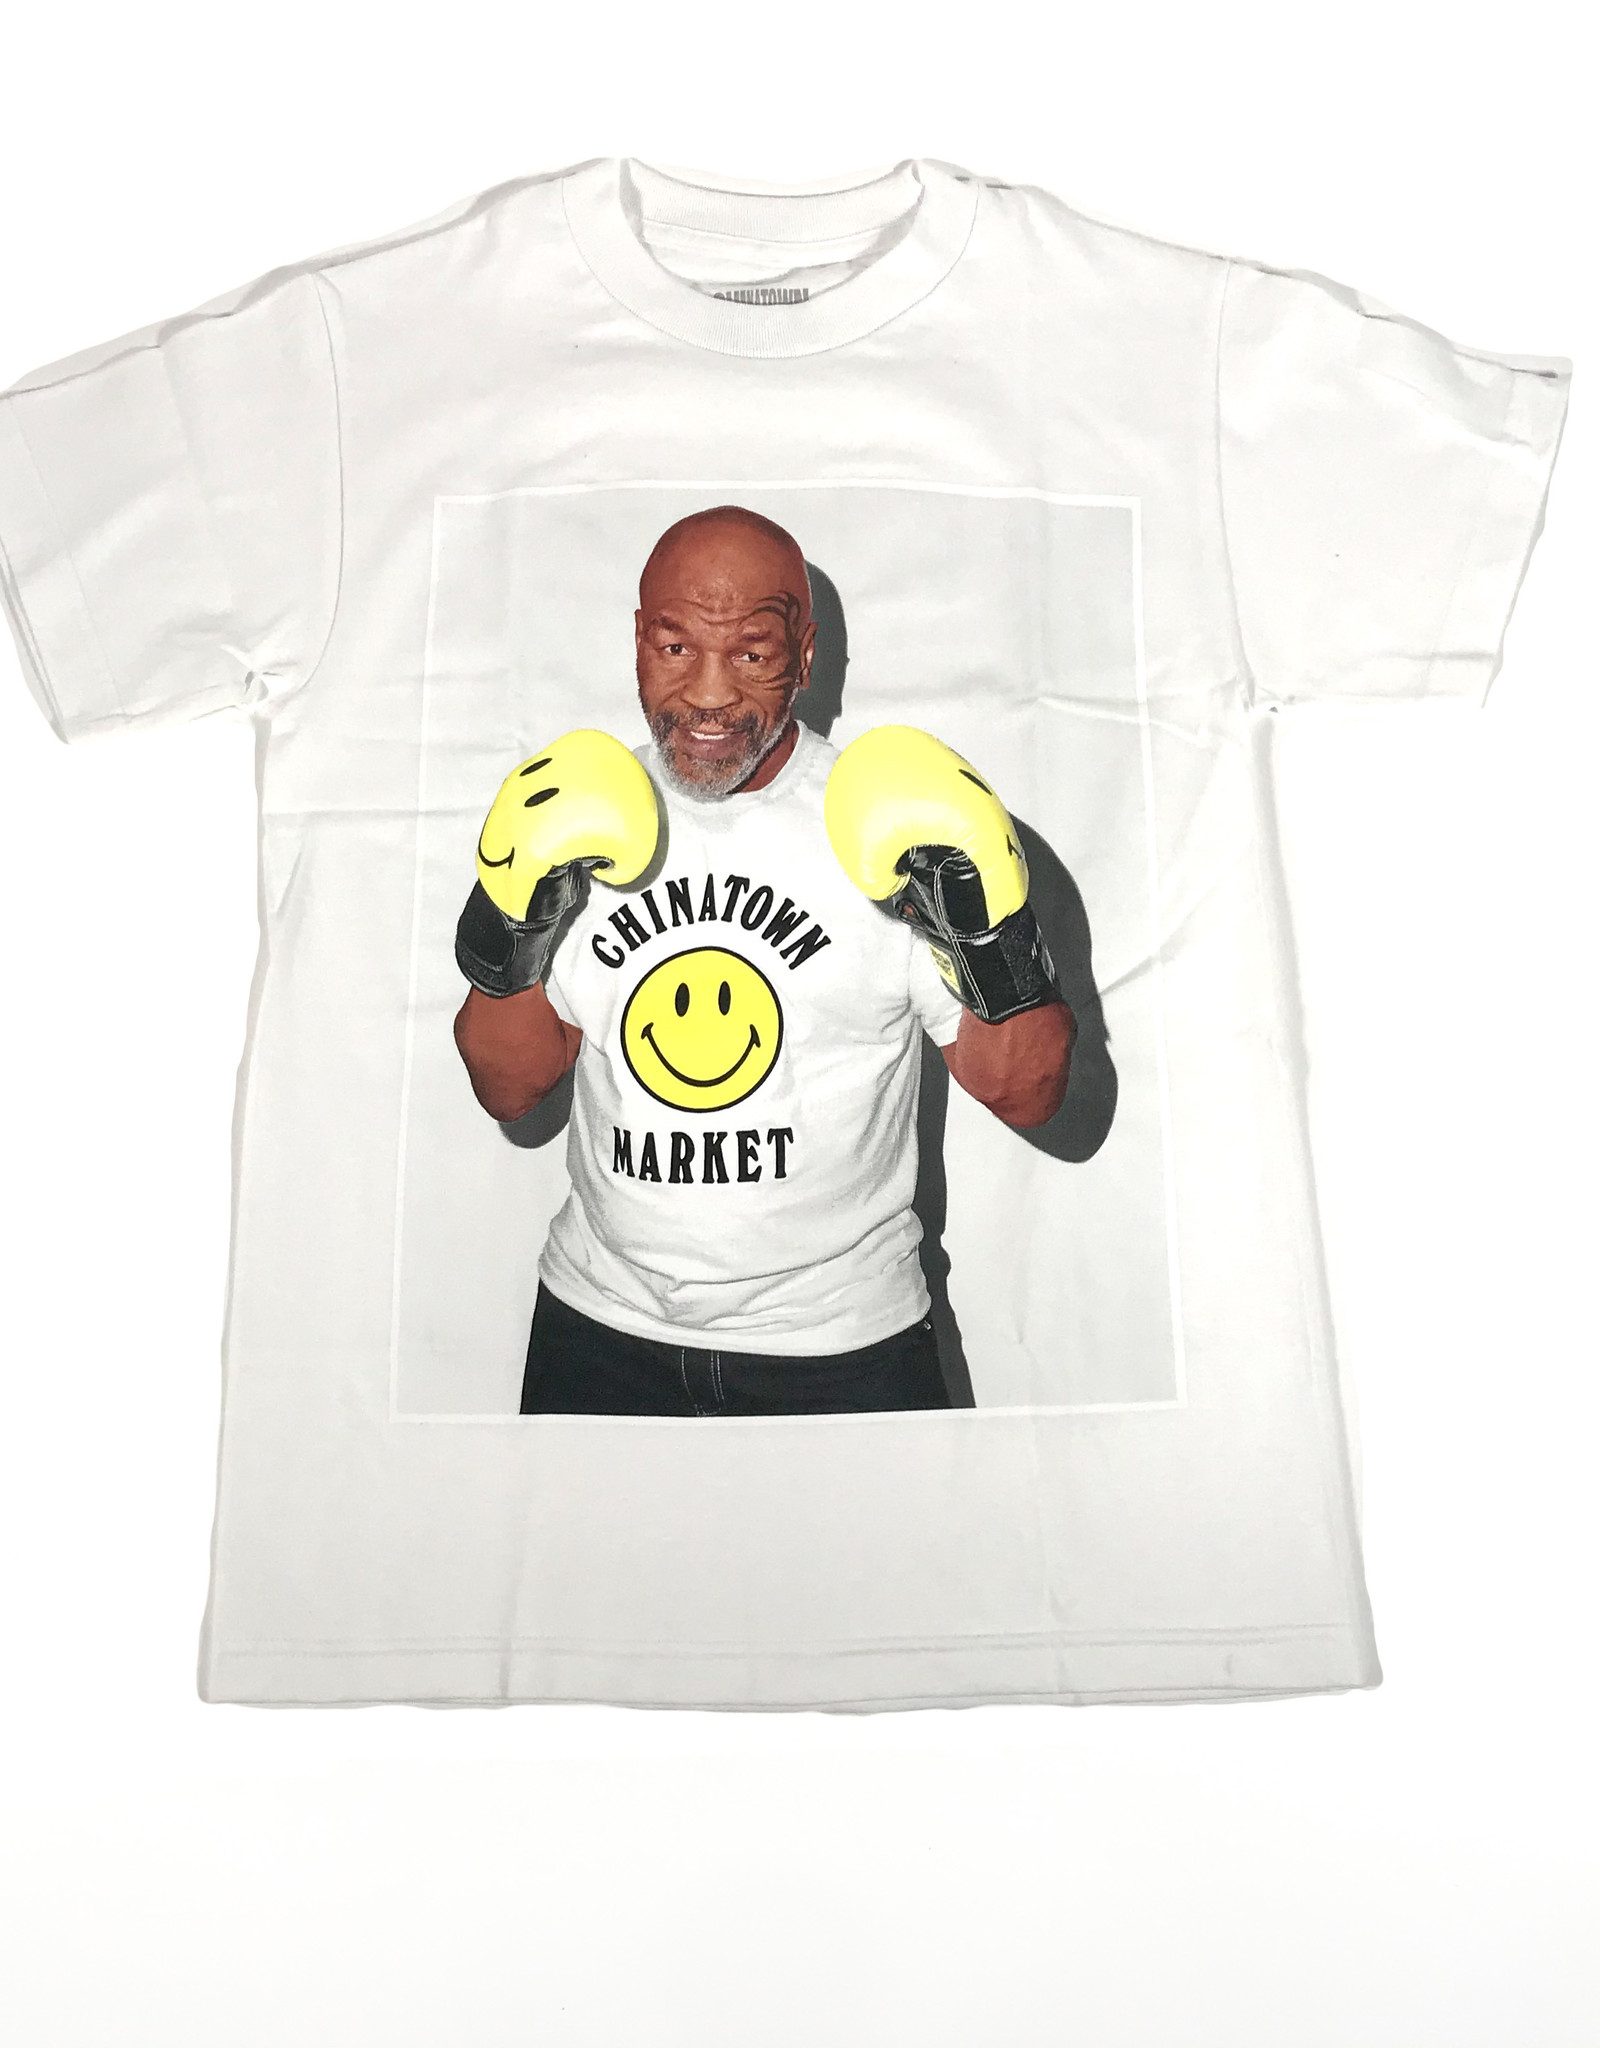 CHINATOWN MARKET CHINATOWN MARKET SMILEY PHOTO S/S TEE - (ALL COLORS)